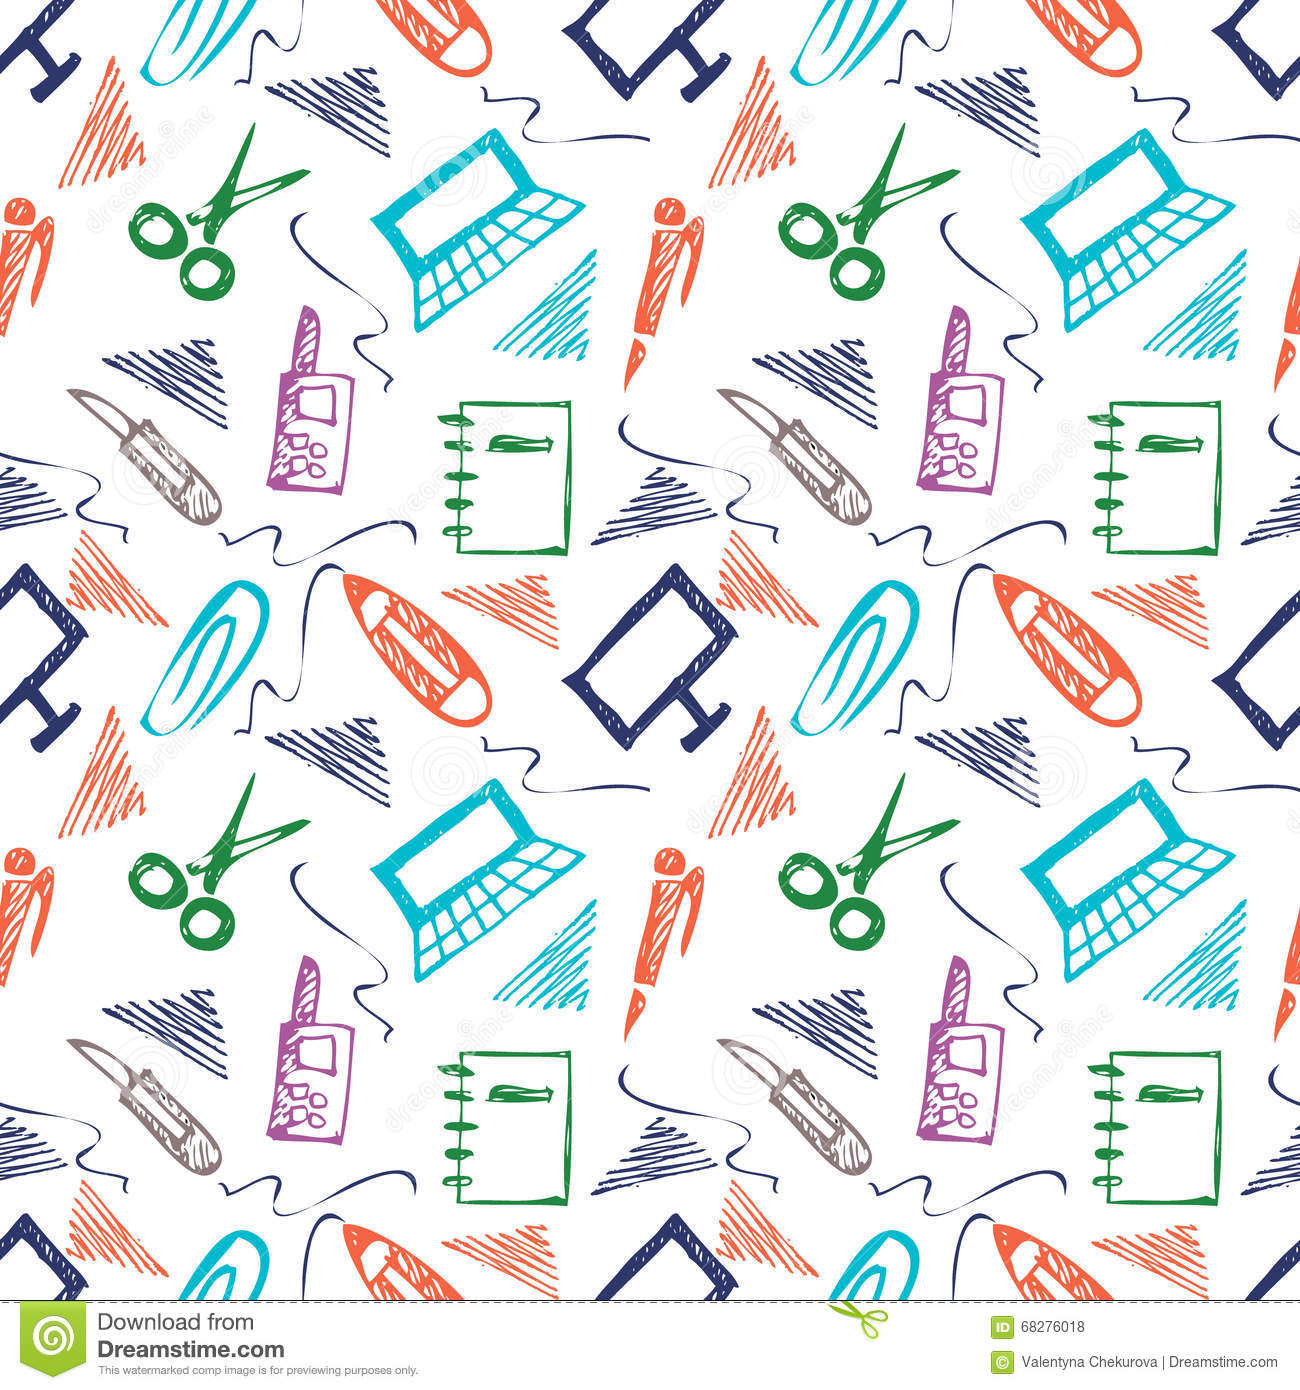 seamless vector pattern with elements of office supplies